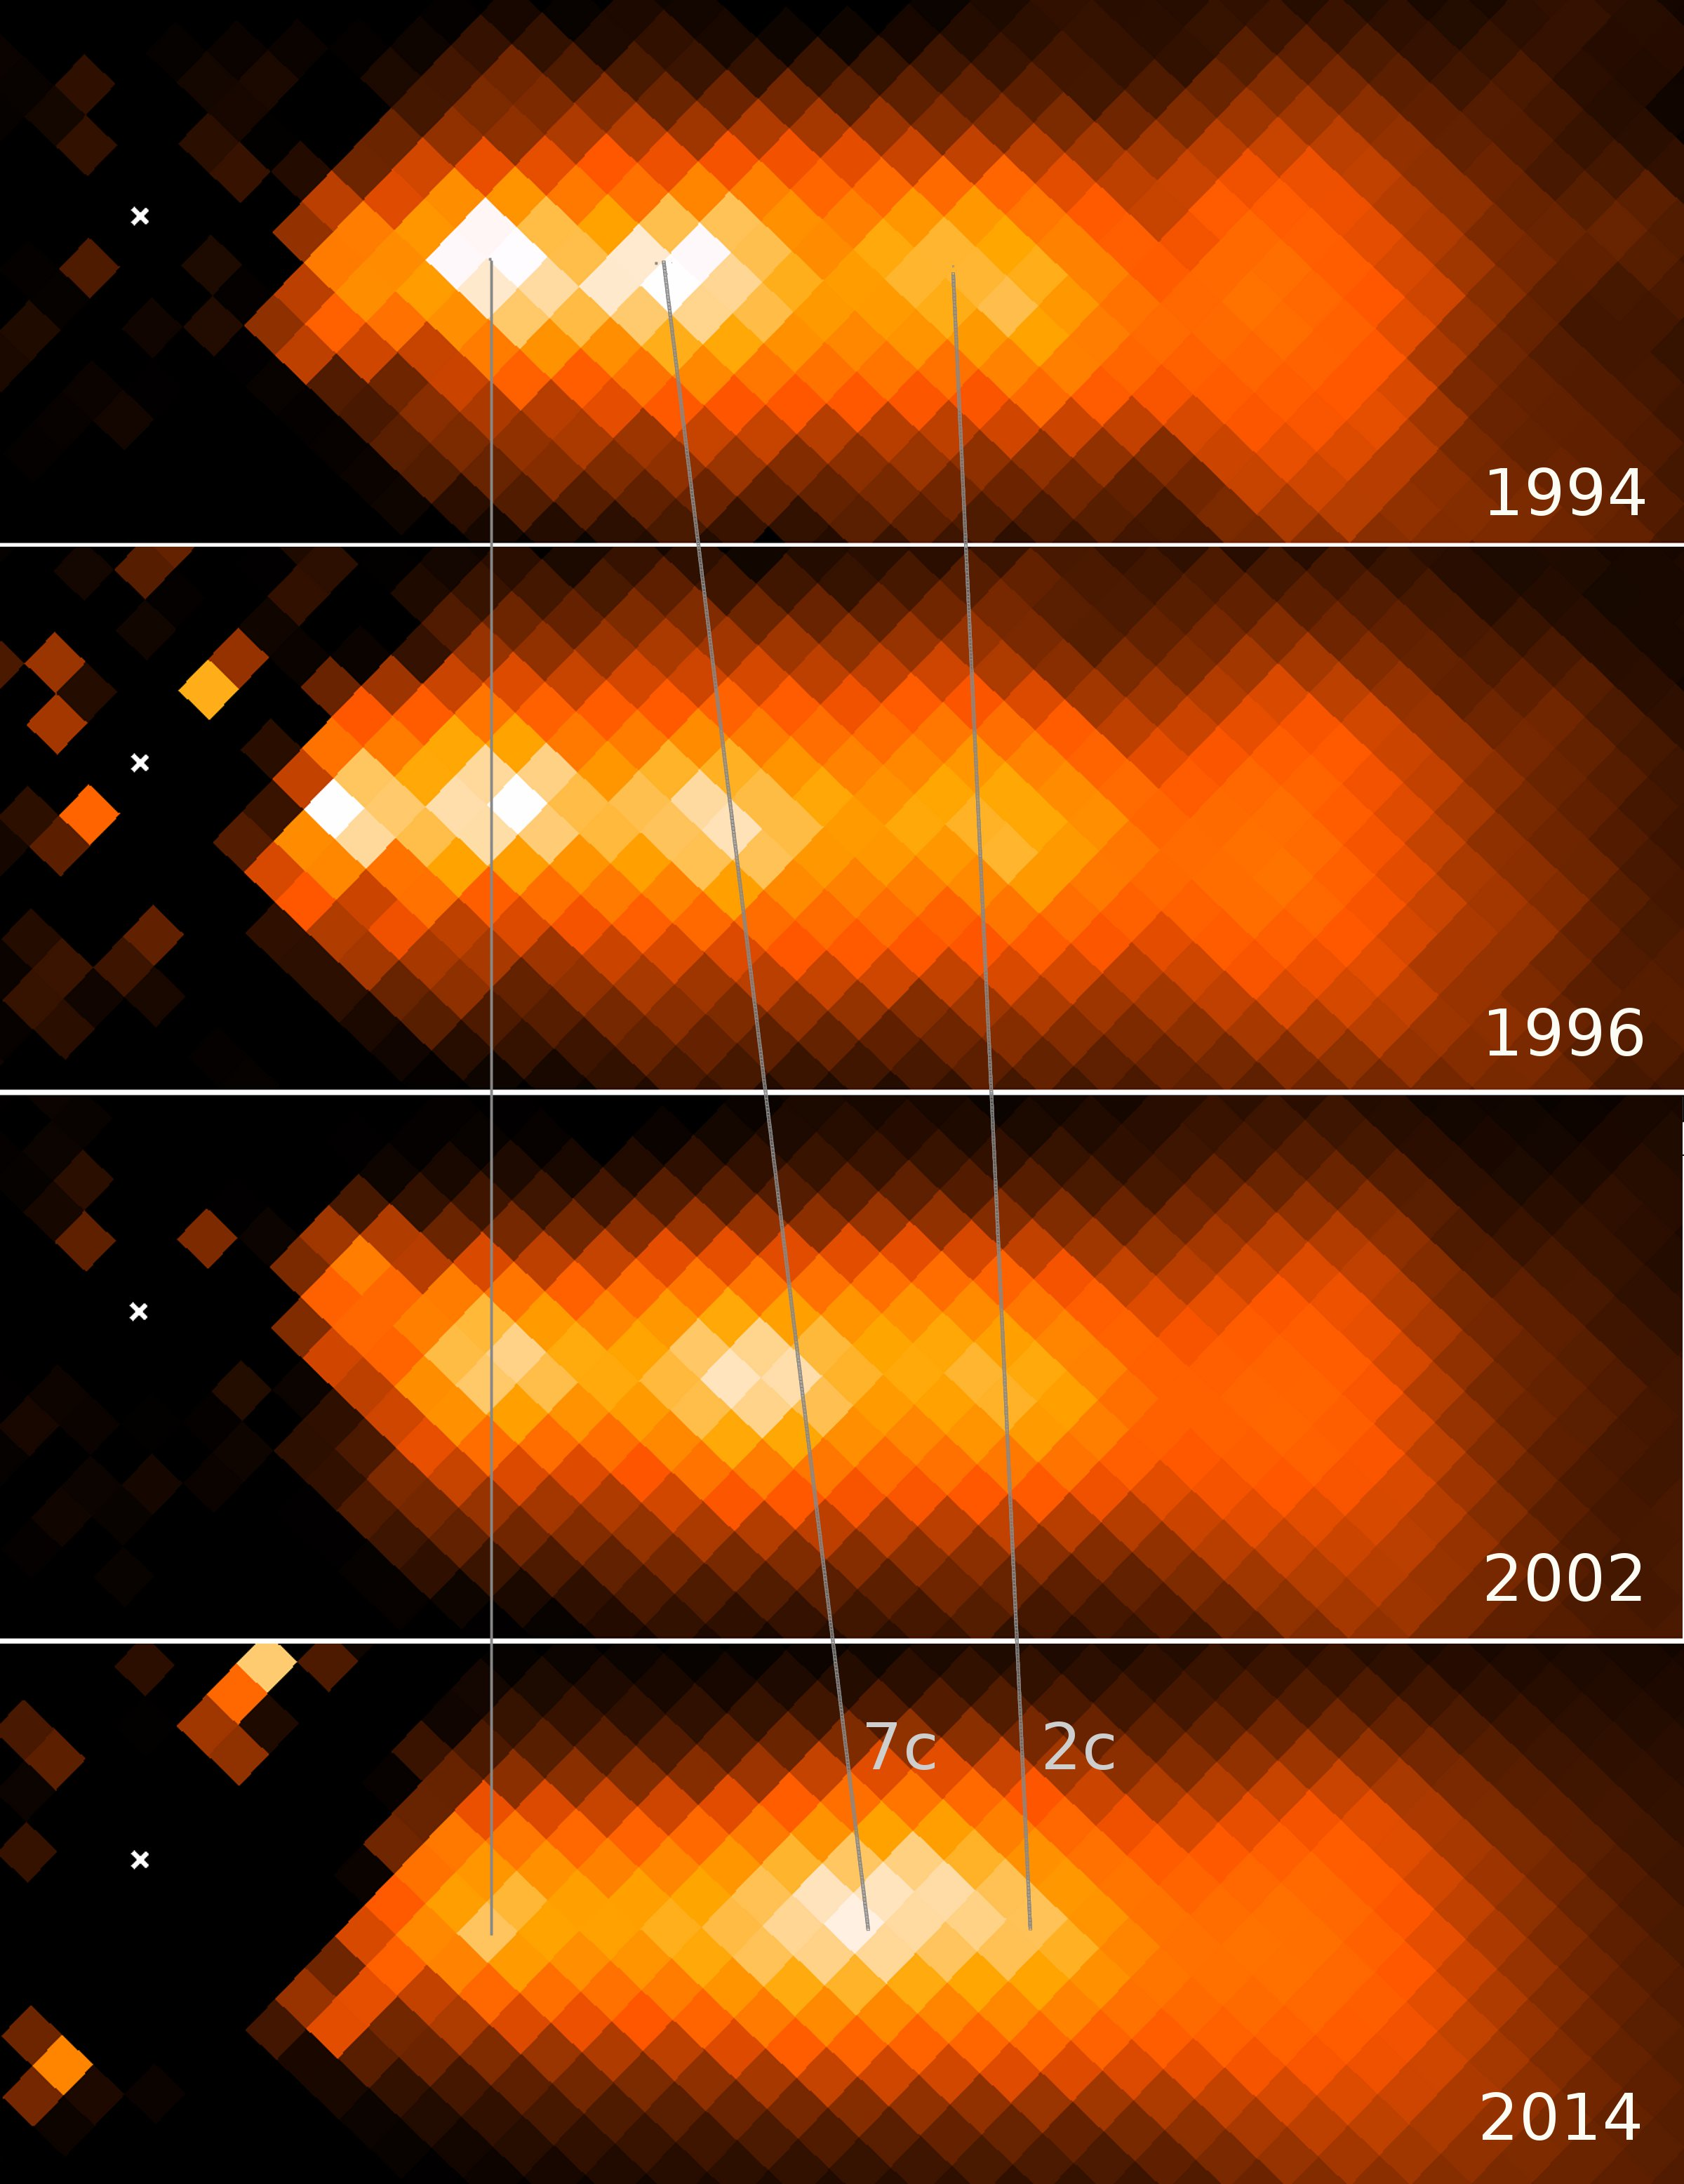 A series of optical images taken by Hubble of a 1300 lightyear-long jet from the super-massive black hole at the center of nearby elliptical galaxy NGC 3862 reveals dramatic changes over 20 years. The bright central knot in the jet appears to move with a speed seven times the speed of light, and is in the process of colliding with a slower-moving downstream knot. The subsequent brightening of both knots indicates that particle acceleration may be taking place as a result of an internal shock collision, a model which has been proposed to explain high-energy radiation from jets of black holes from a few to billions of times the mass of our sun. (from Meyer et al., 2015, Nature)